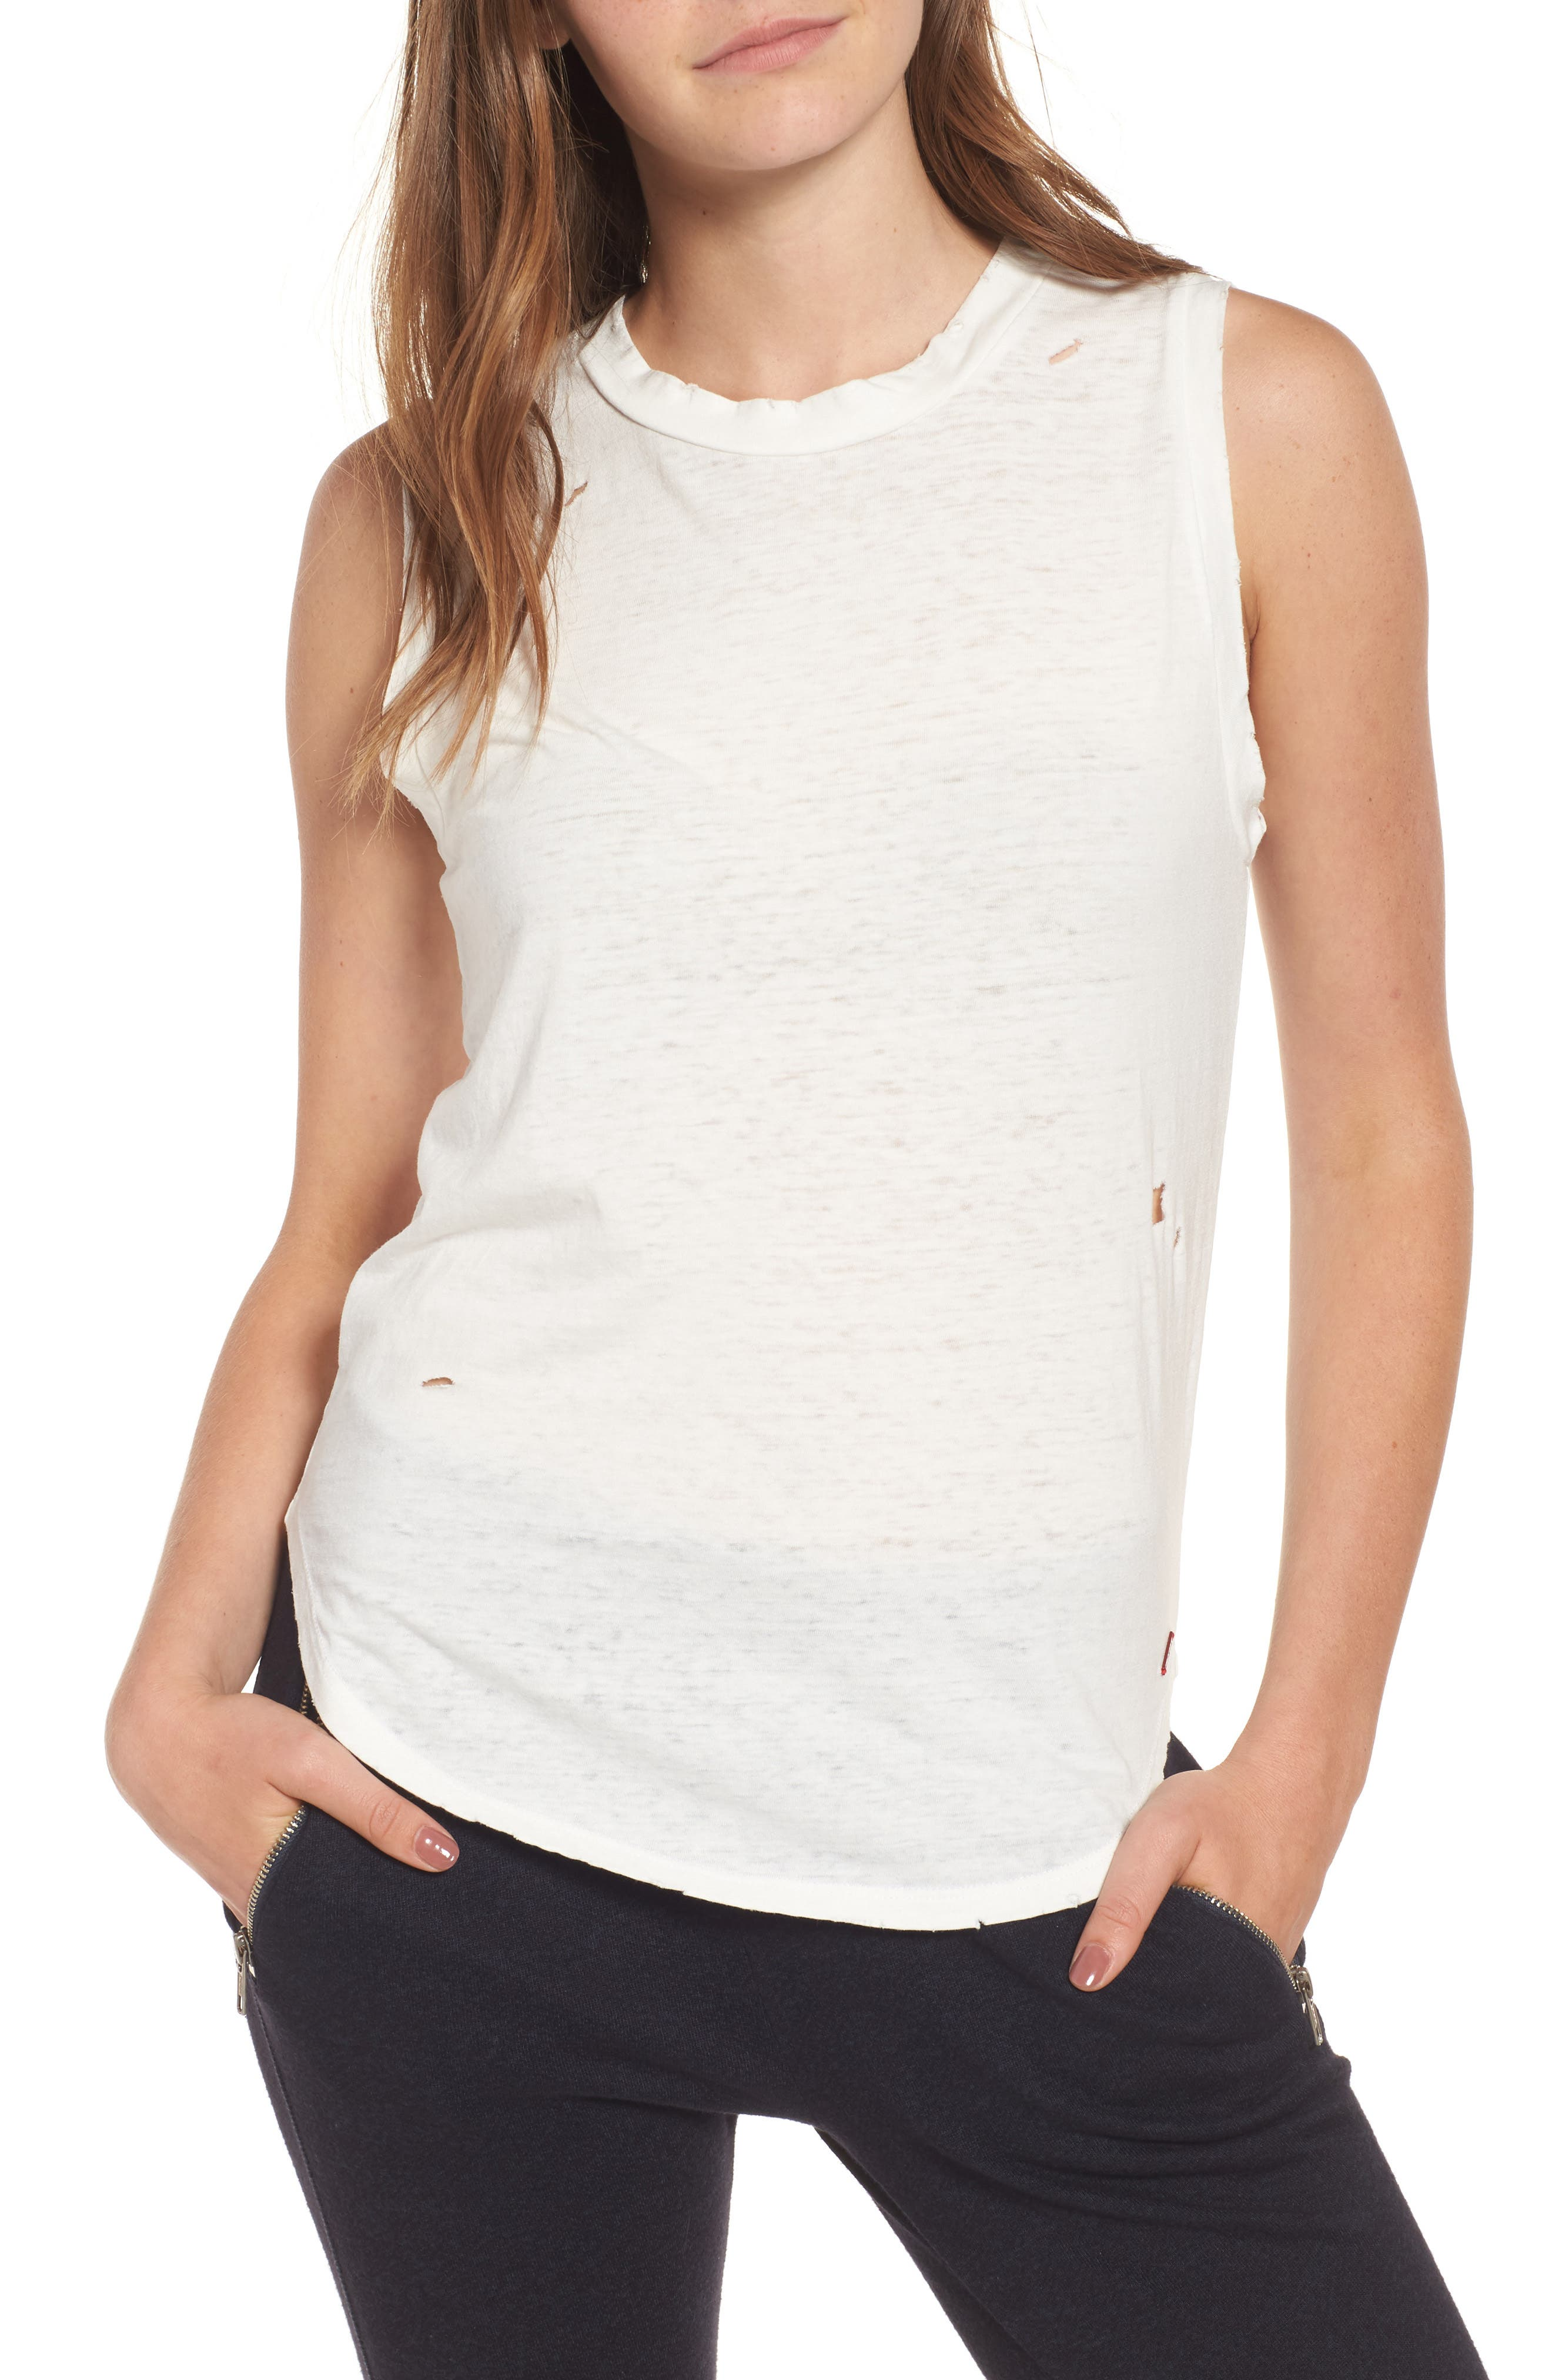 Corin Deconstructed Muscle Tank,                             Main thumbnail 1, color,                             100